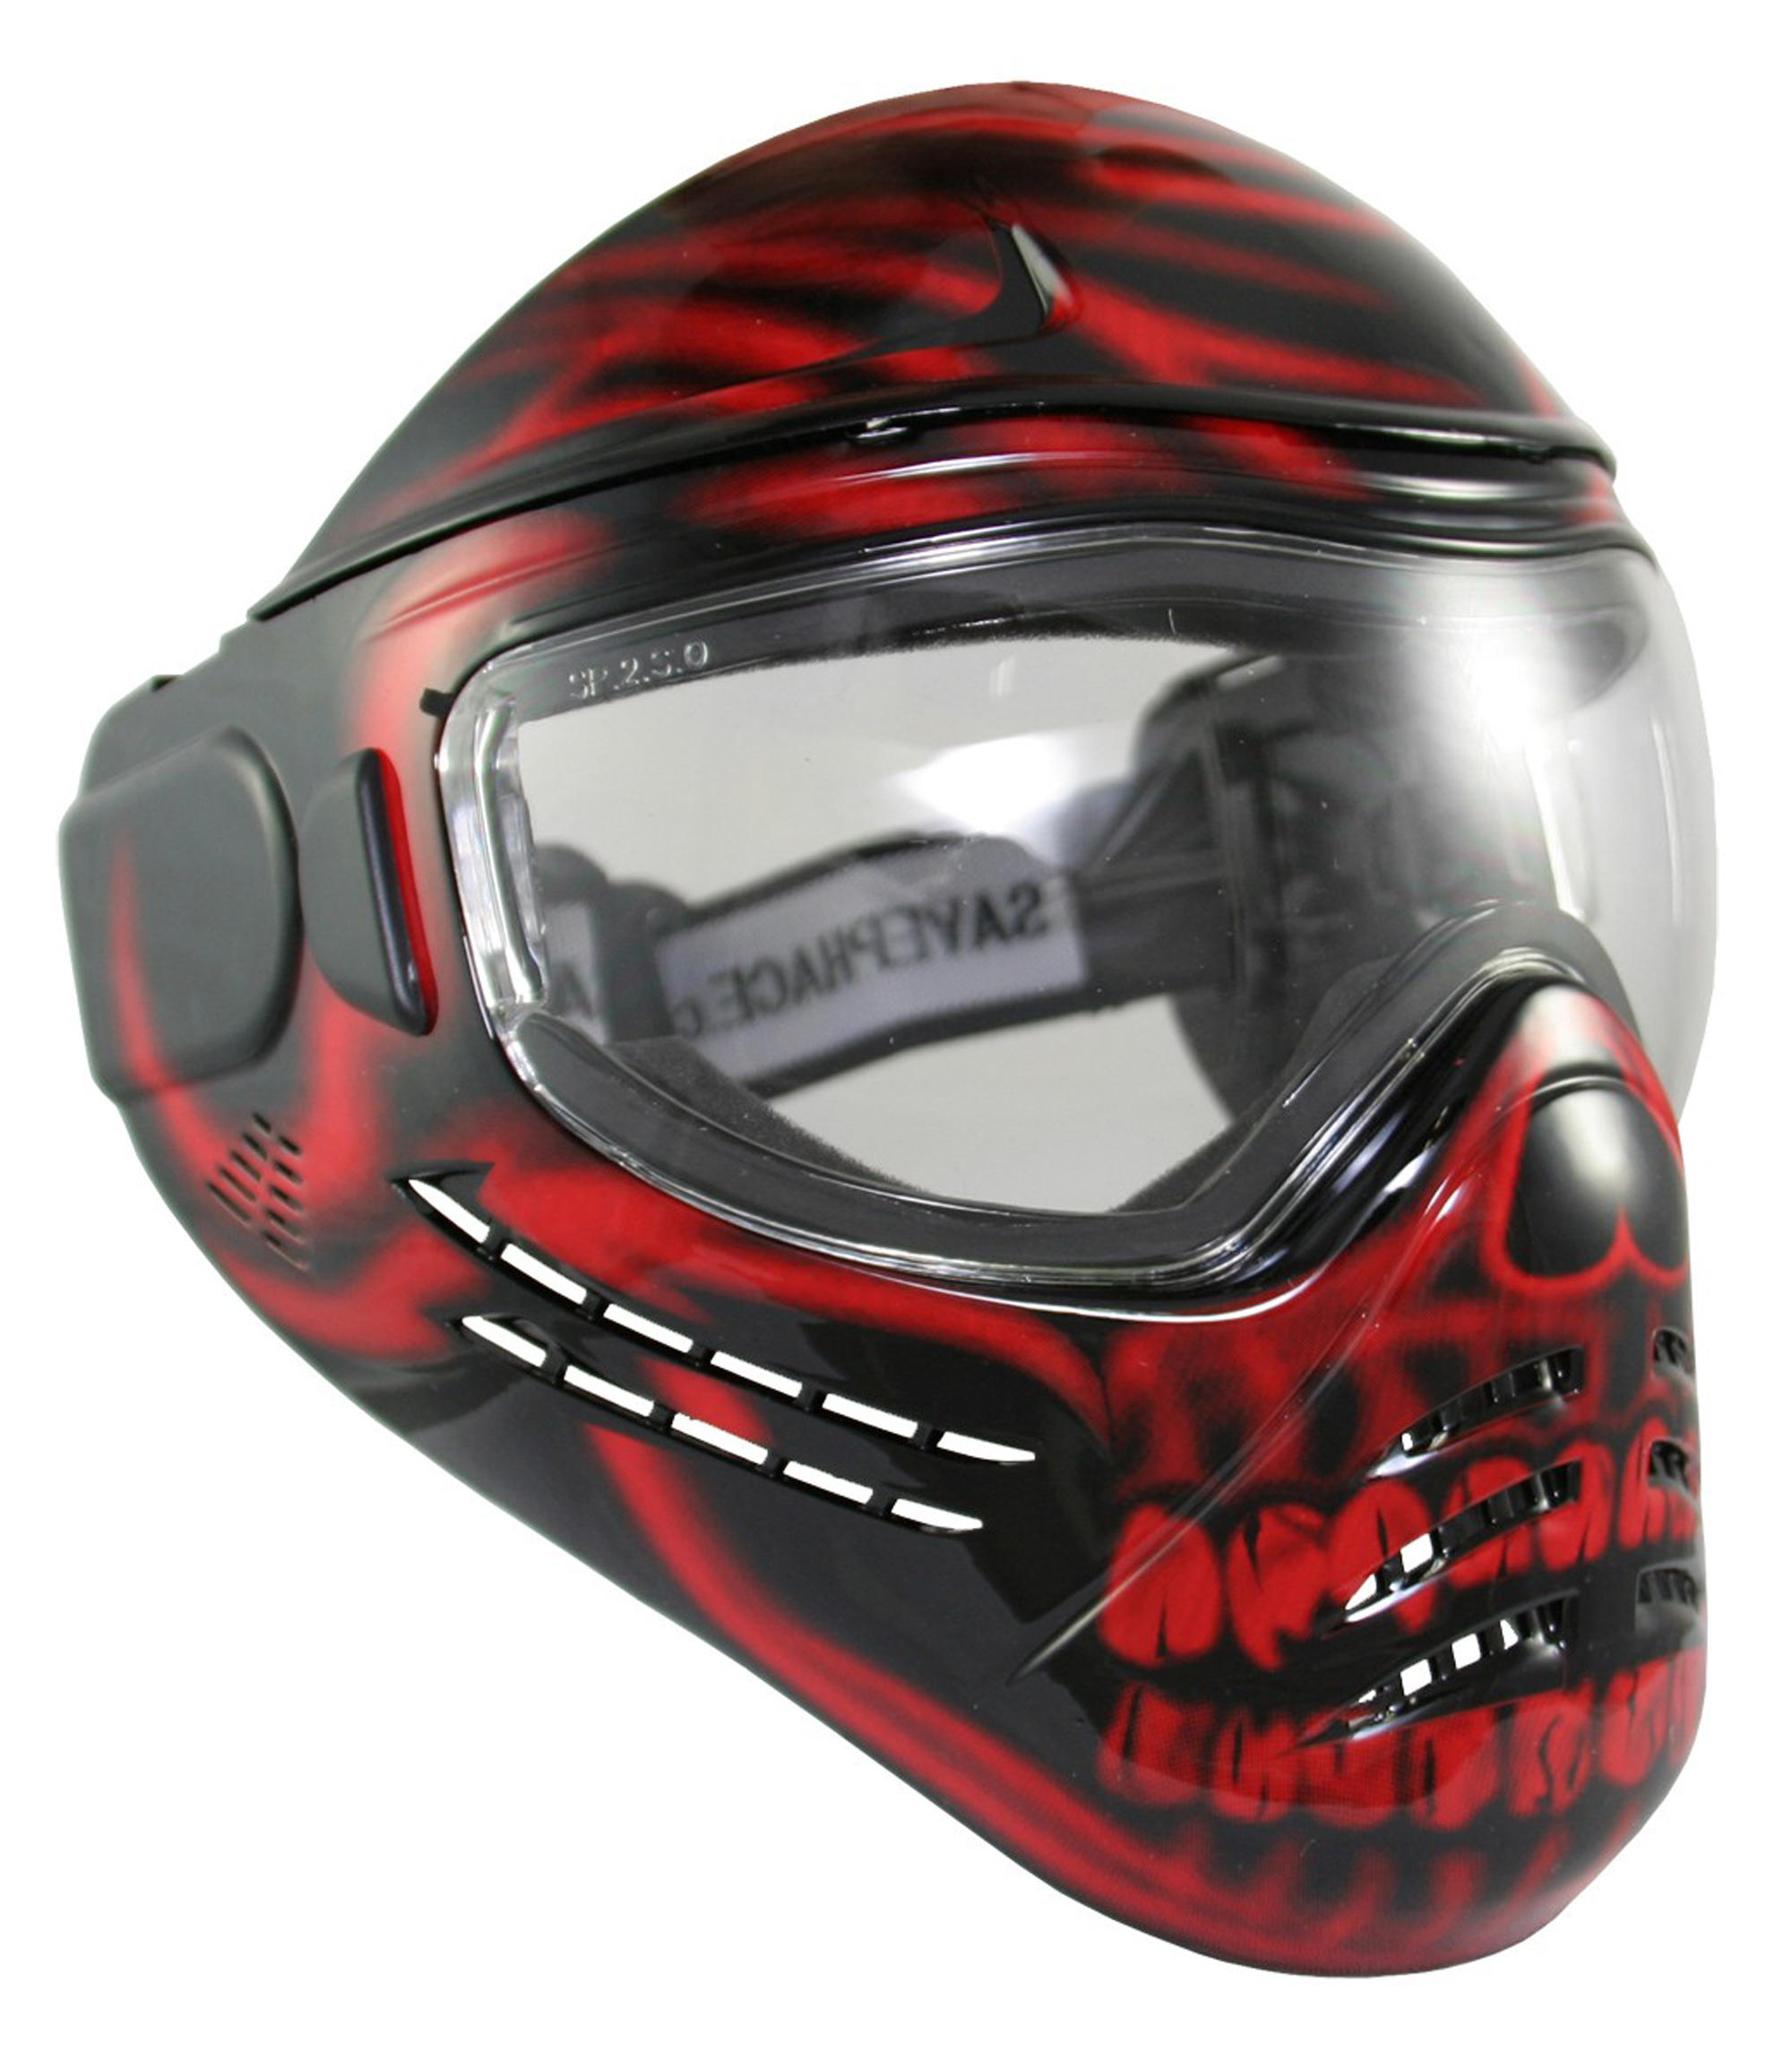 Awesome paintball masks